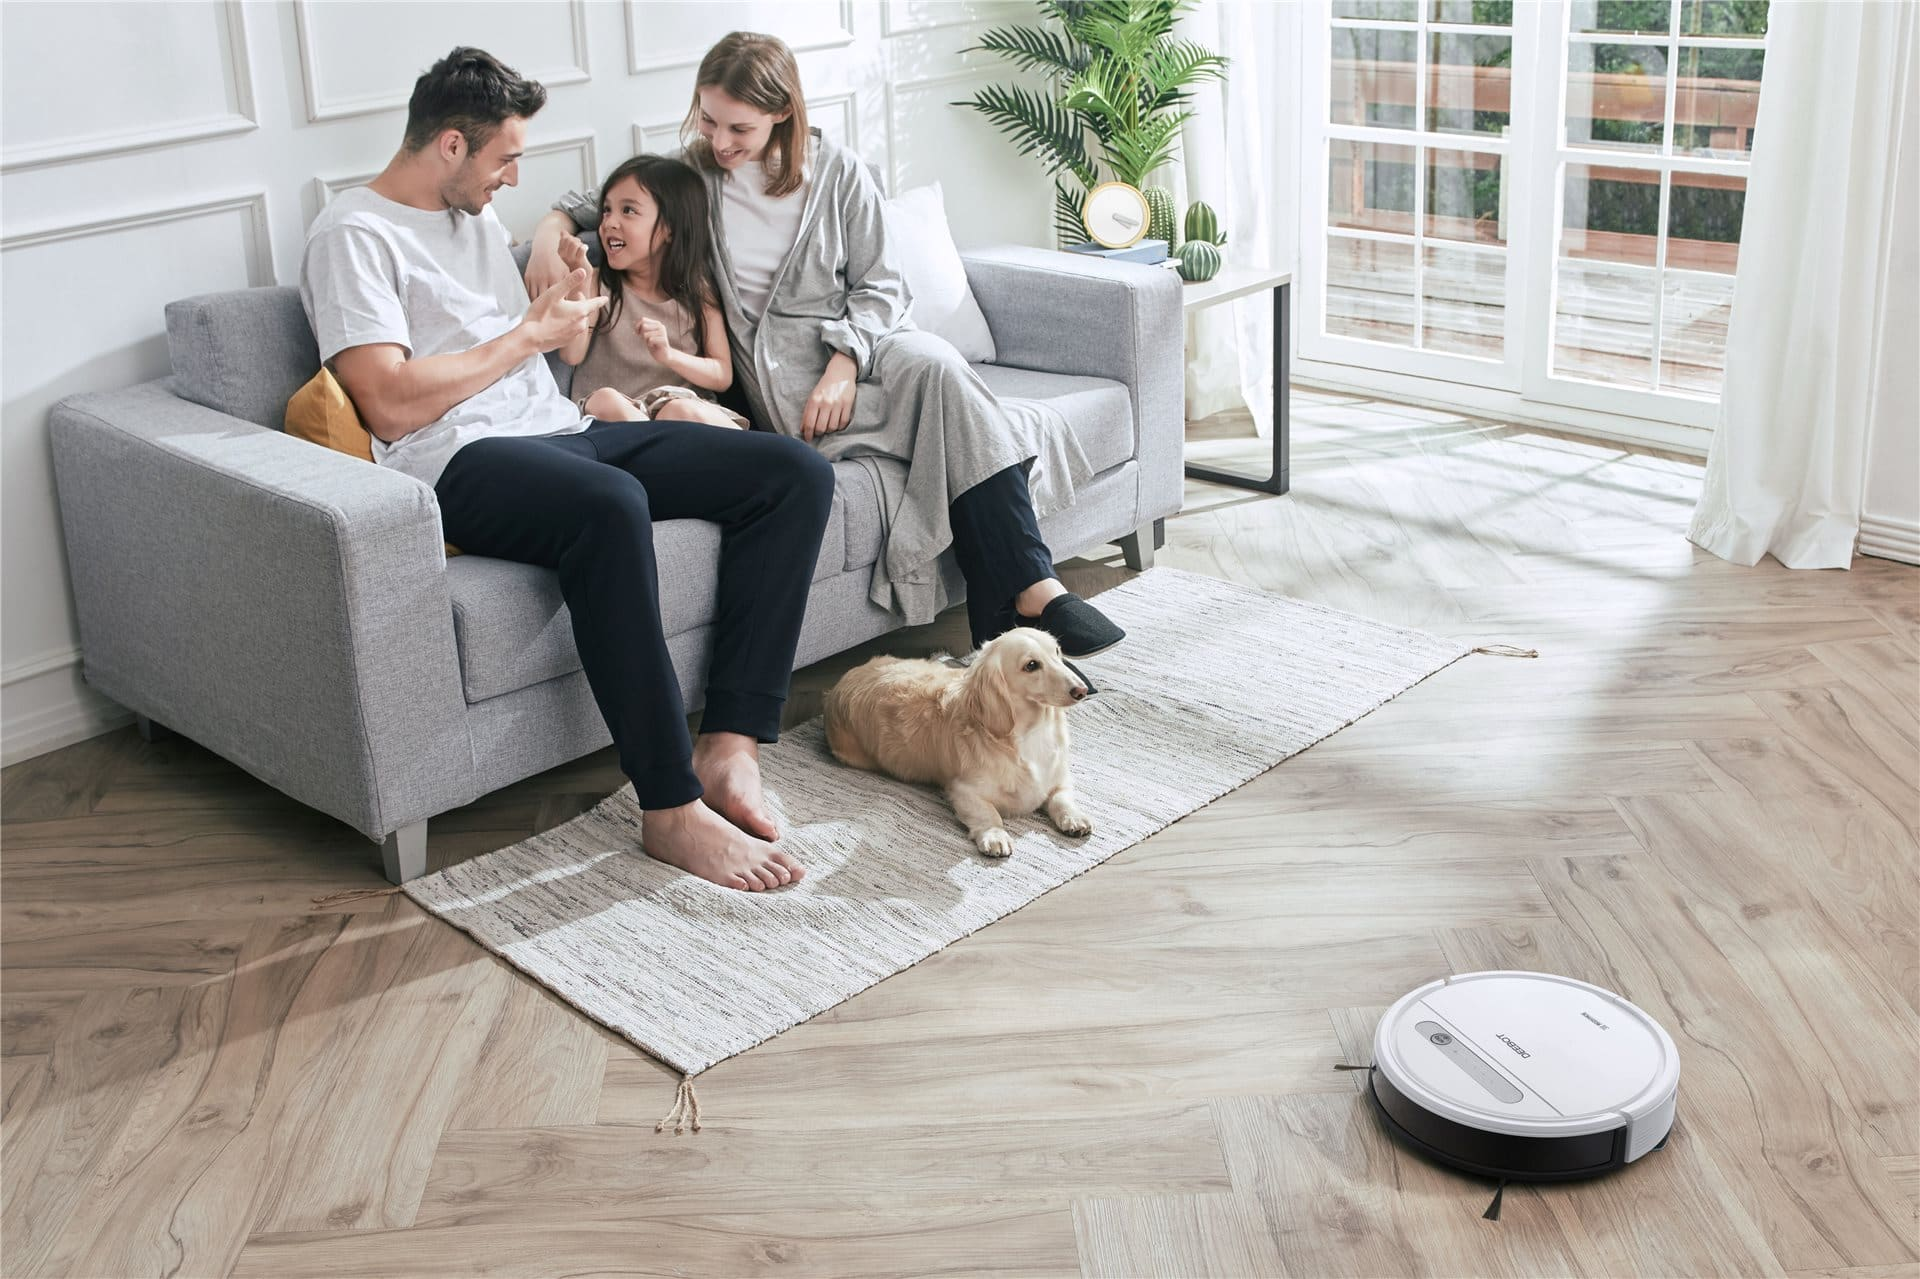 A Popular Sold Out Robotic Vacuum Amp Mop Is Returning To